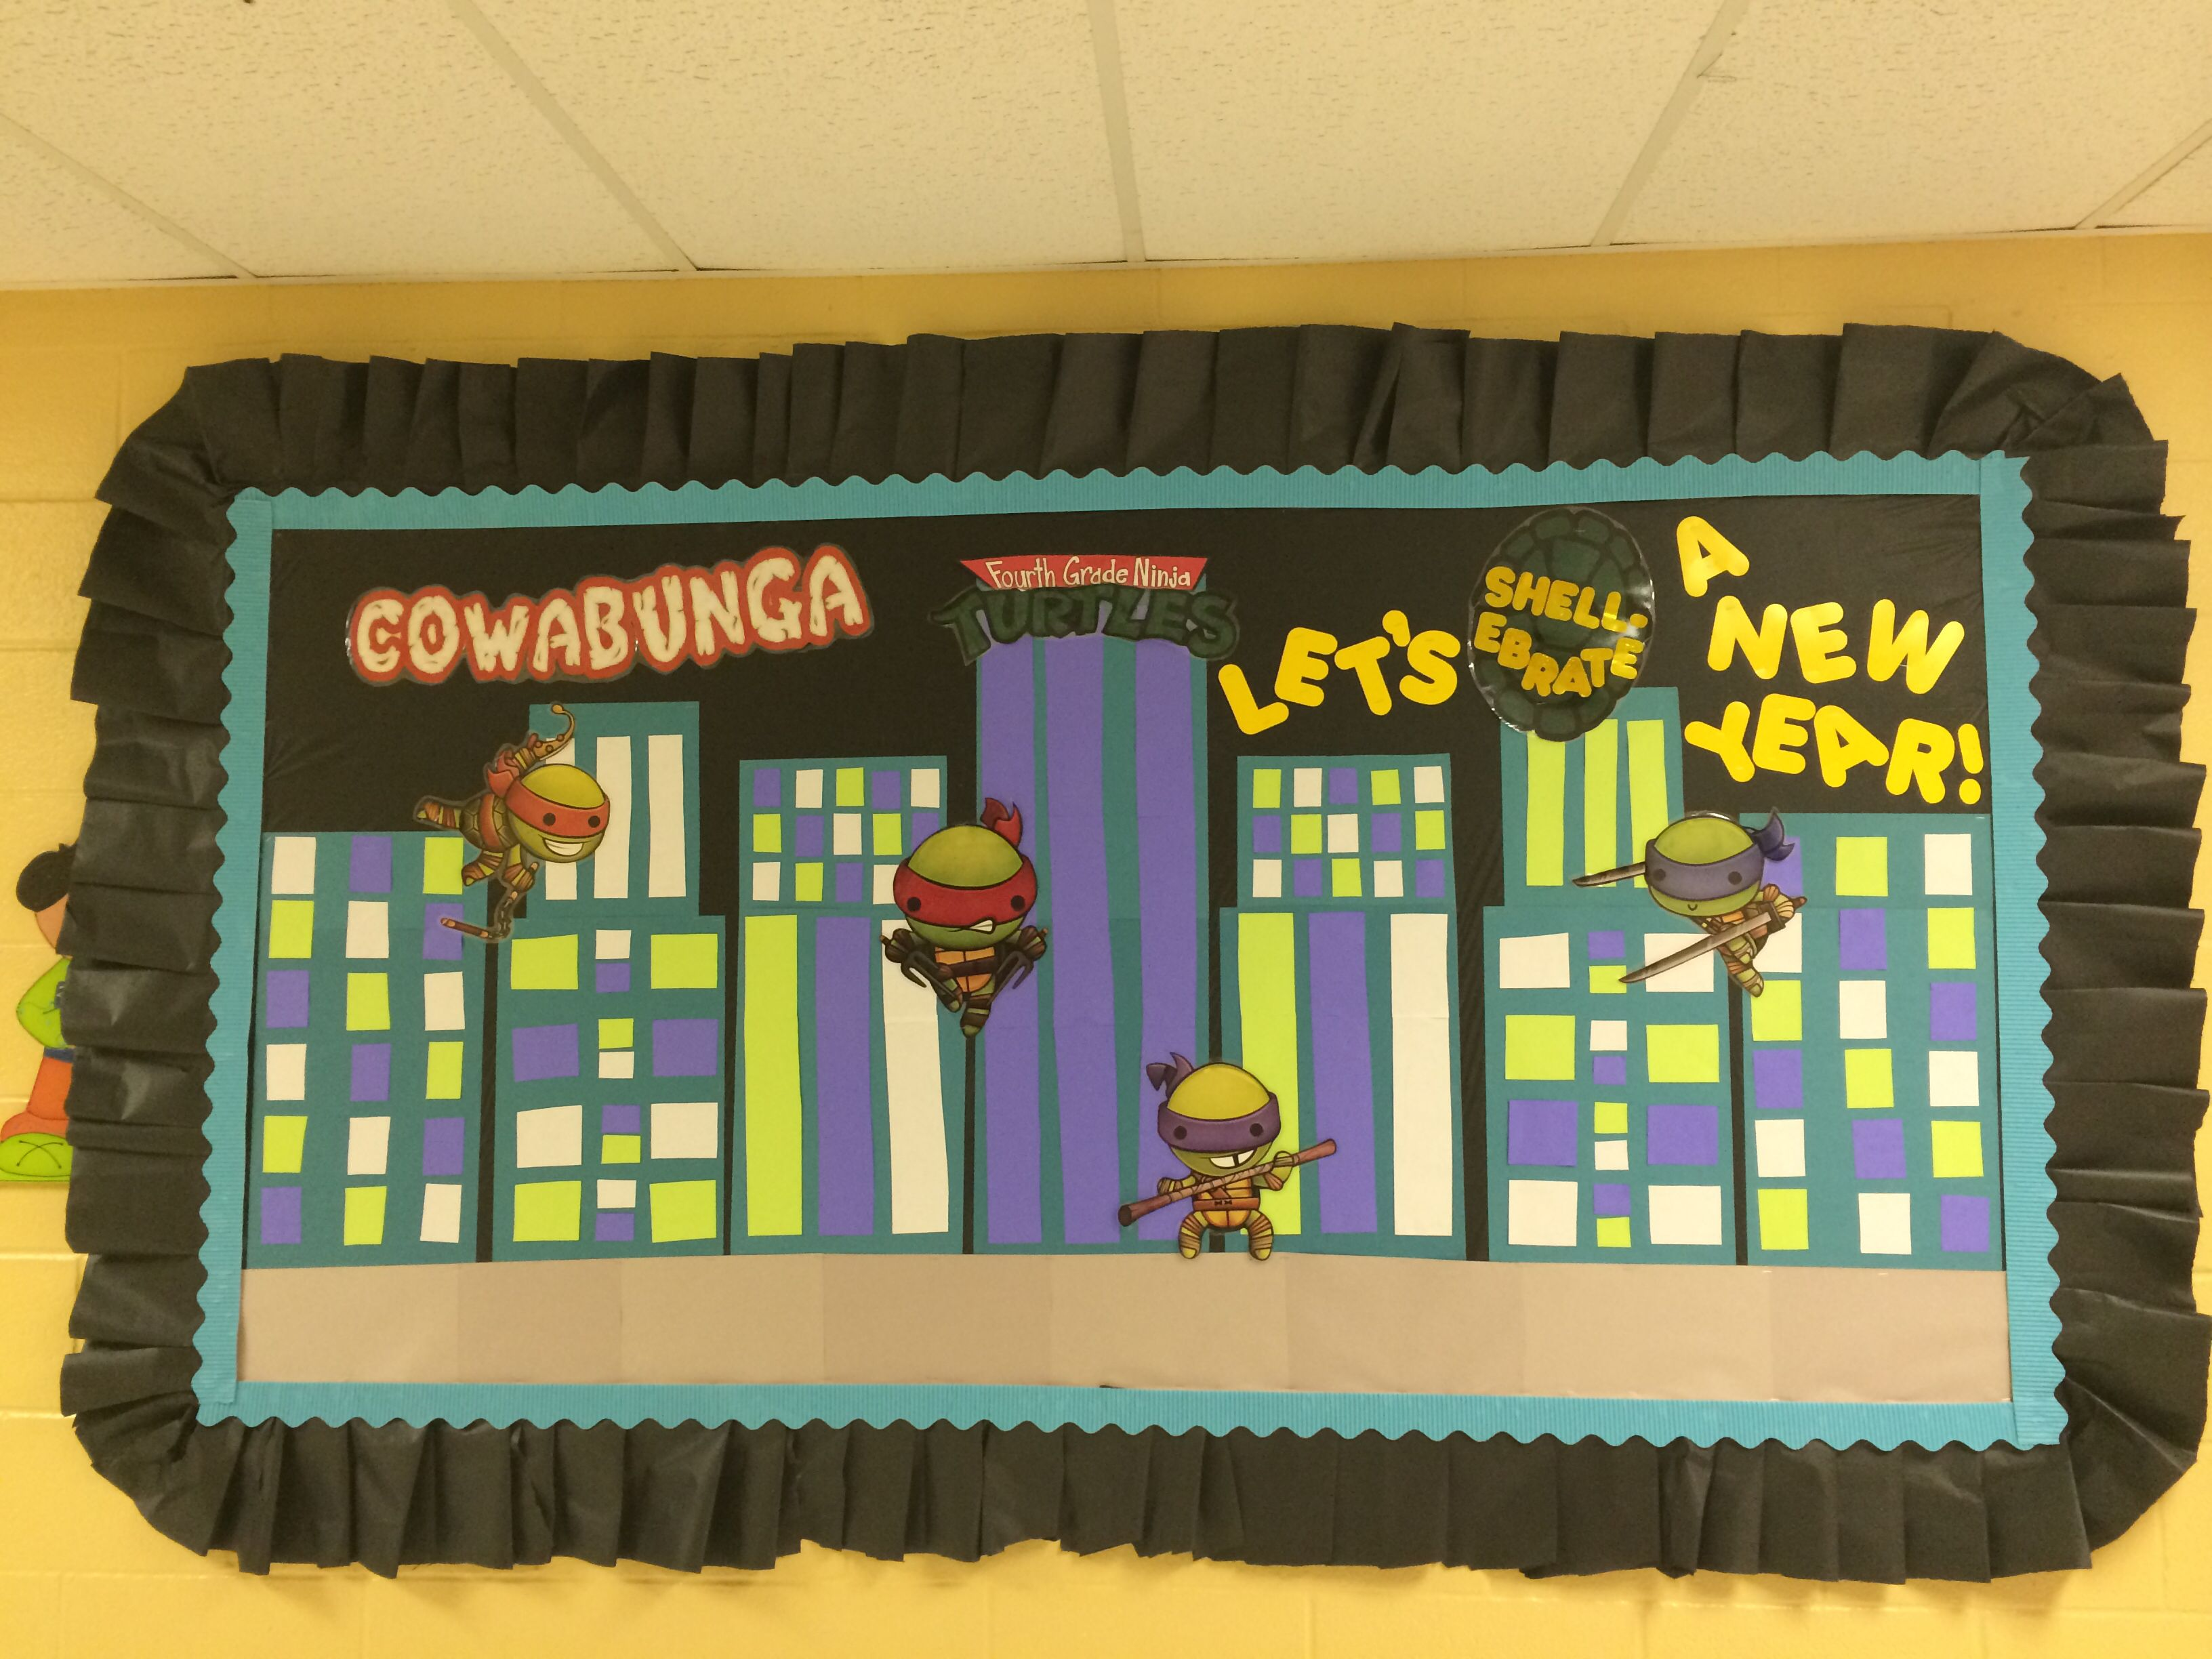 Back To School Ninja Turtle Bulletin Board Cowabunga Fourth Grade Ninja Turtles Let S Shell